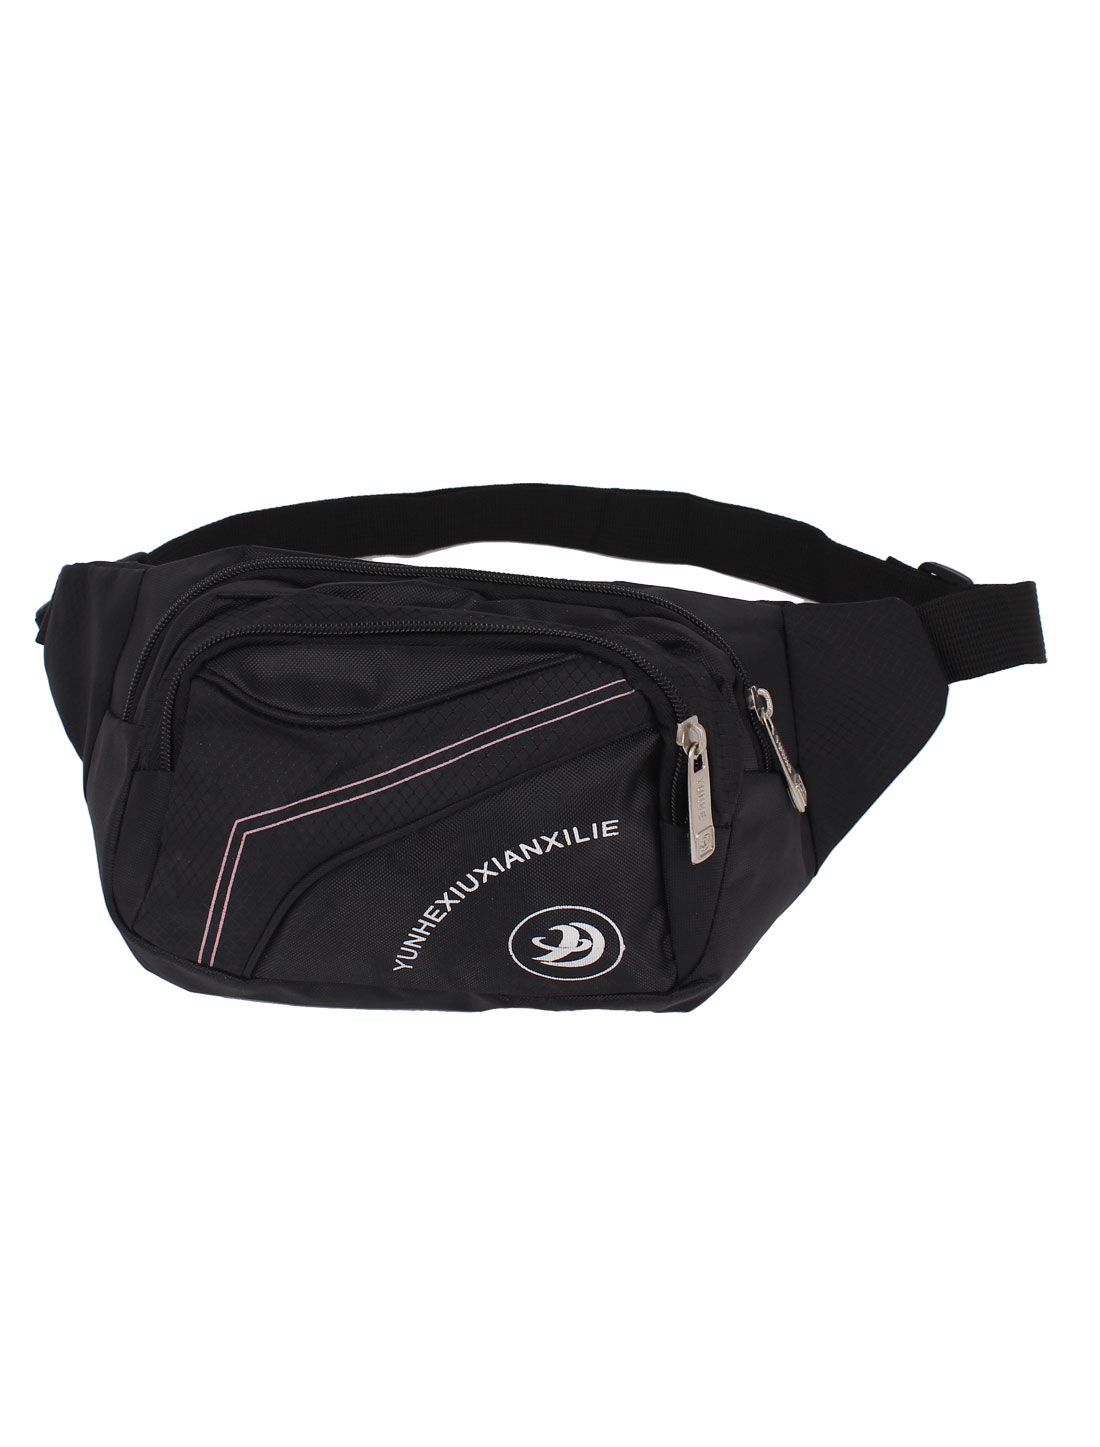 Men Lady Travel Hip Fanny Waist Bag Pack Belt Pouch Purse Black